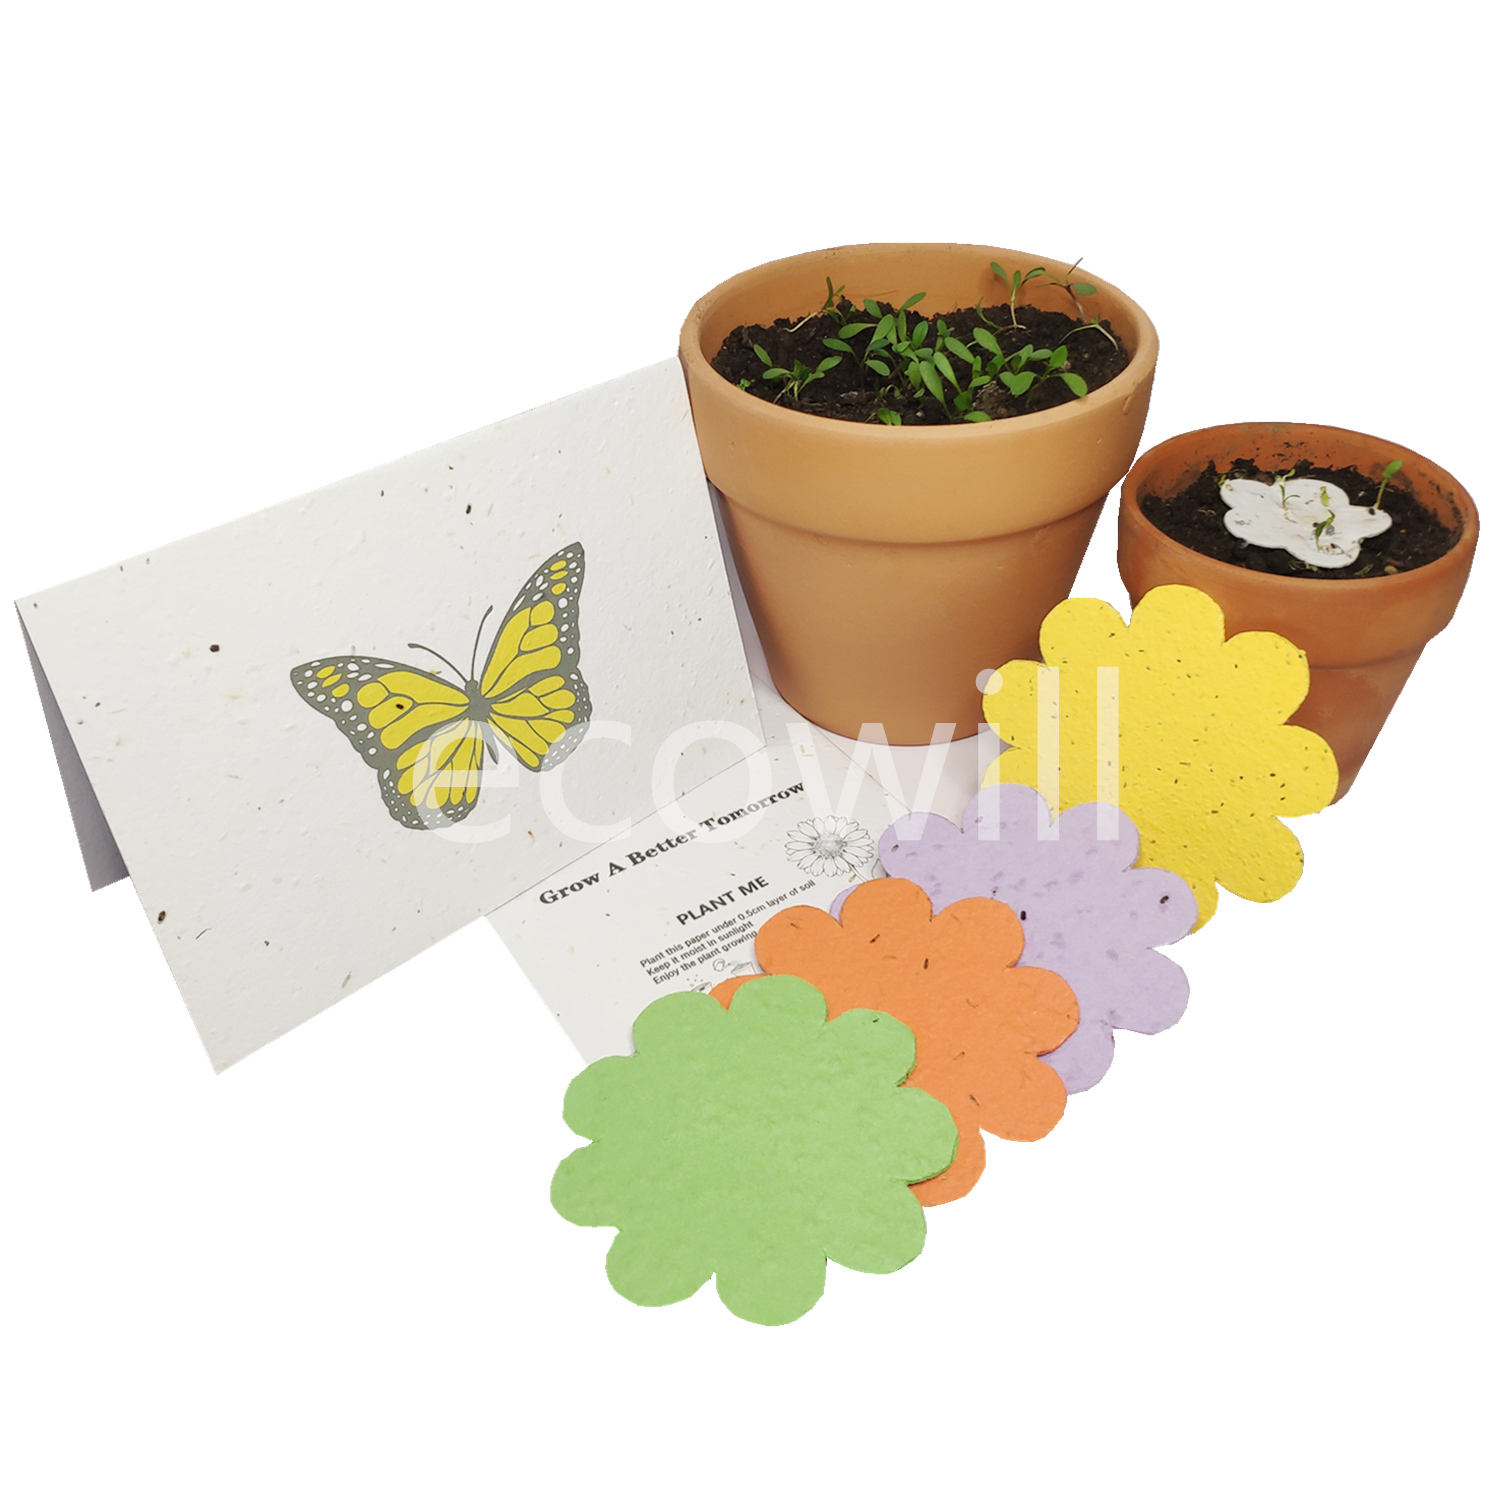 Butterfly Plantable Seed Paper Greeting Card with Botantical Verb Veggie Flower Seeds